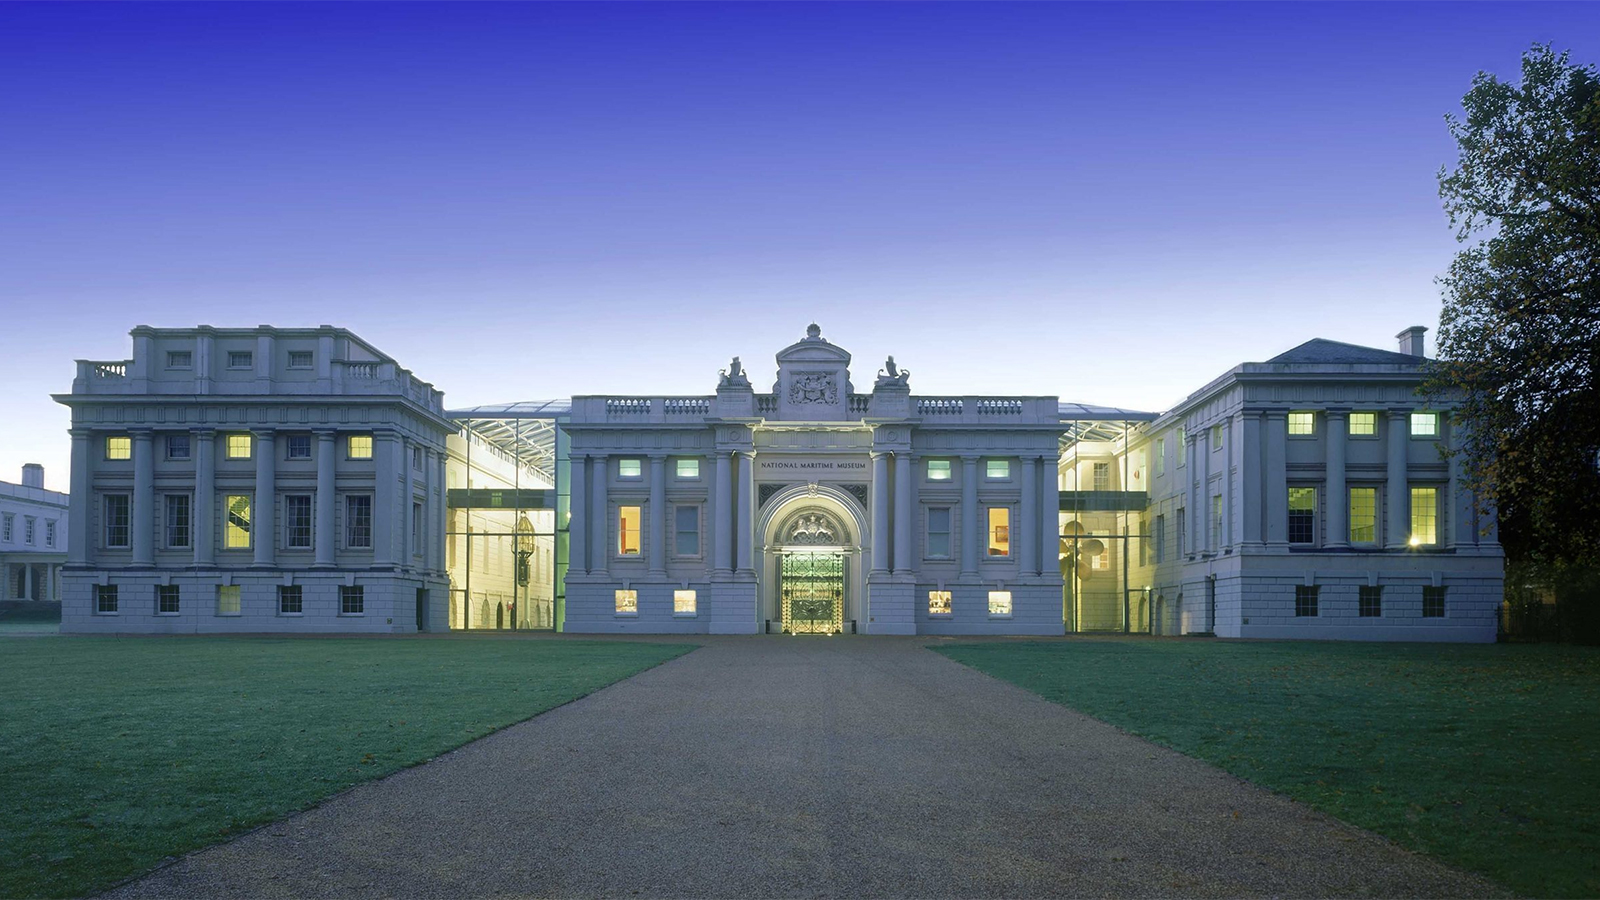 The National Maritime Museum in Greenwich